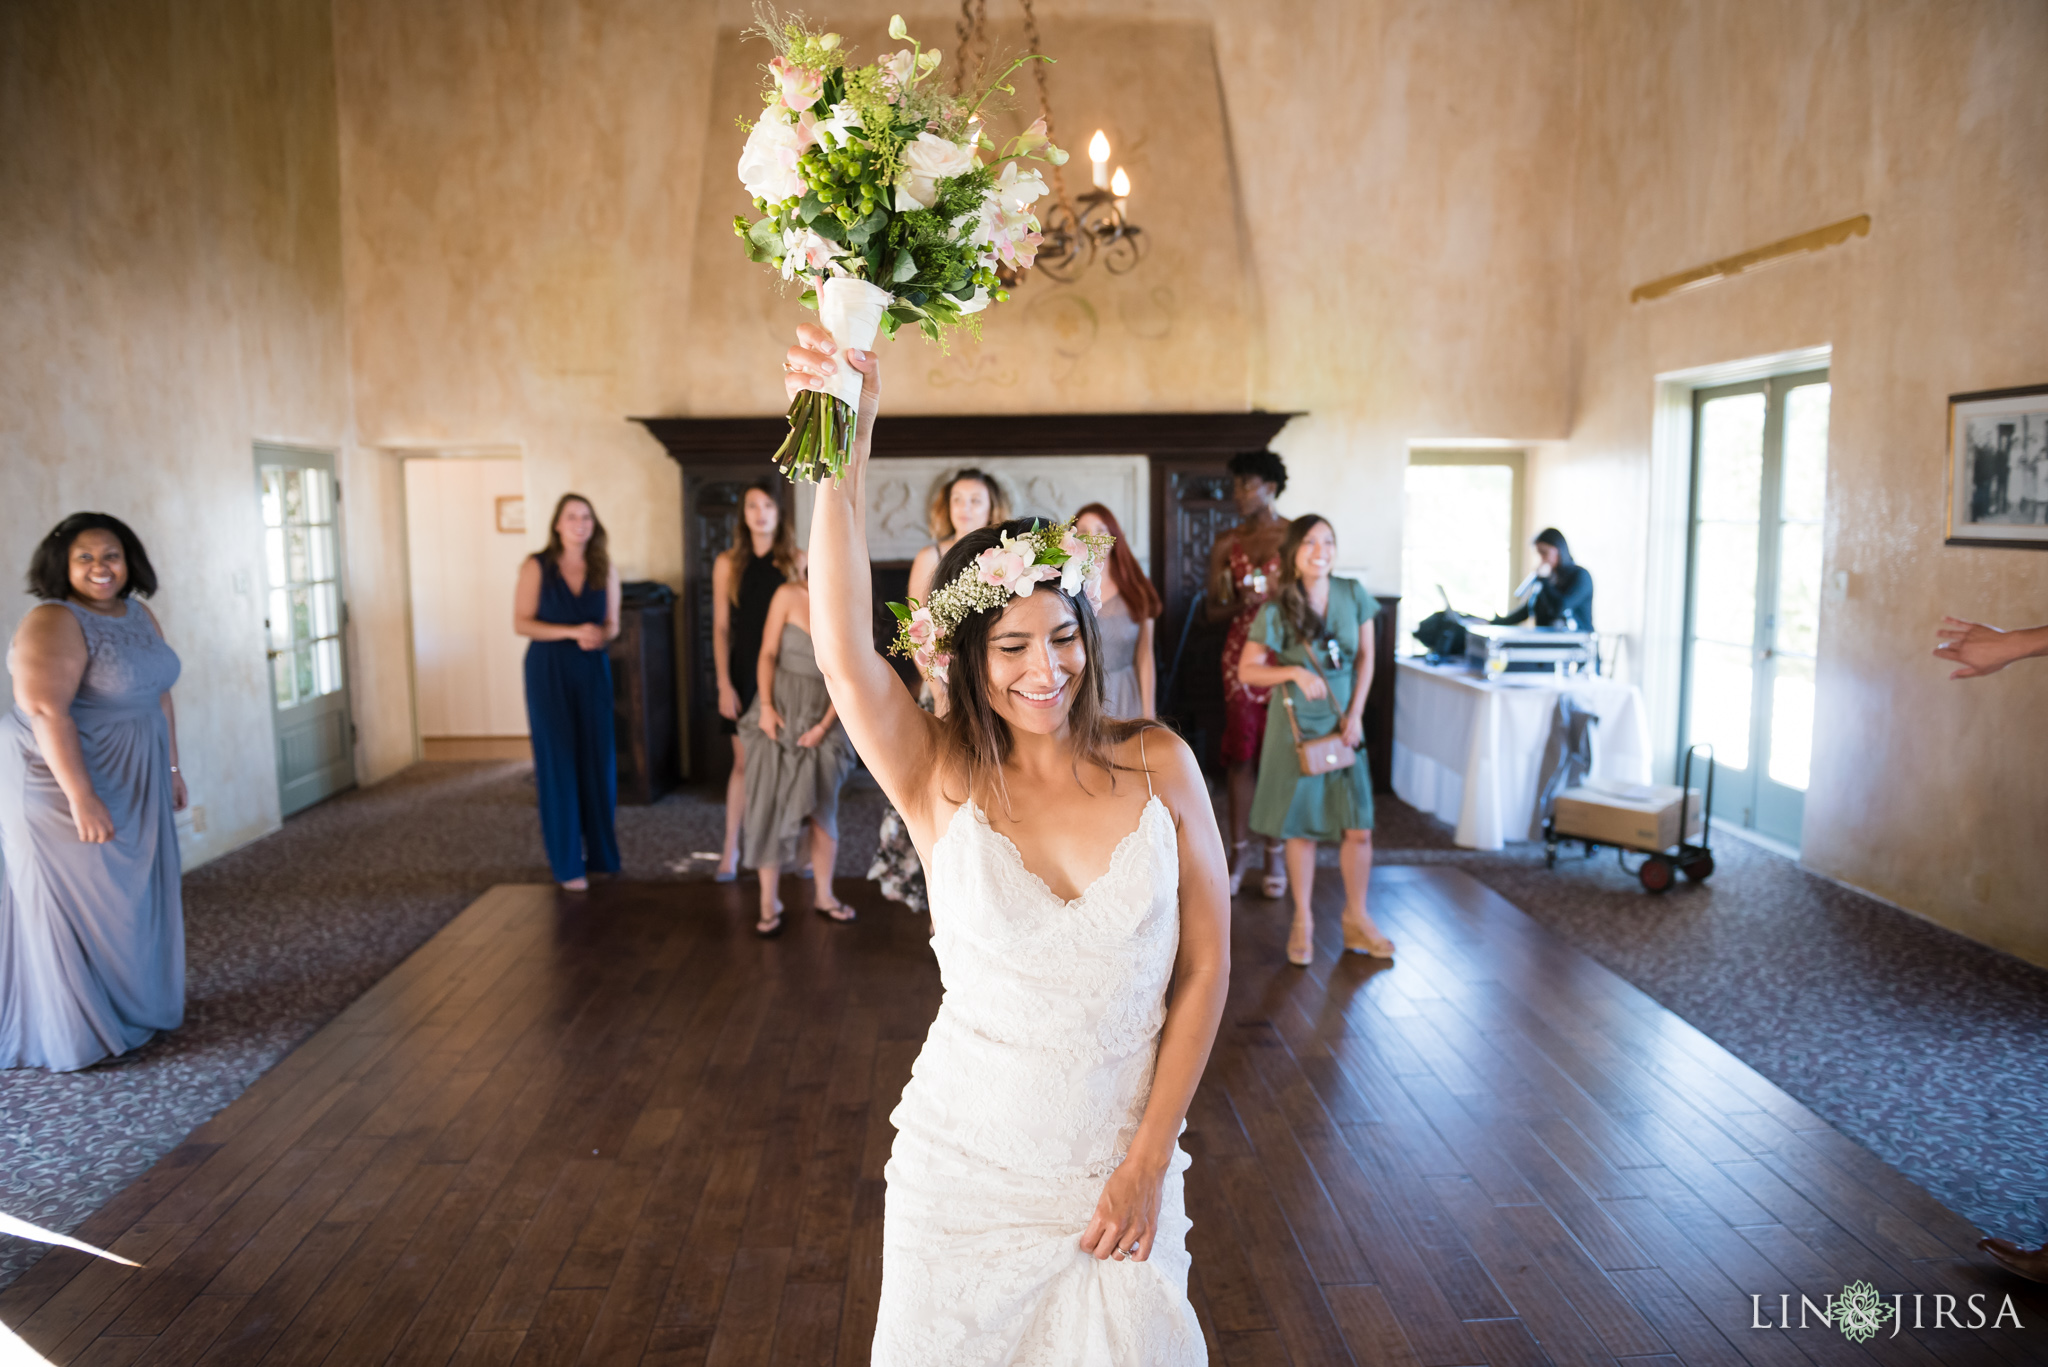 20-la-venta-inn-wedding-photography-ranchos-palos-verdes